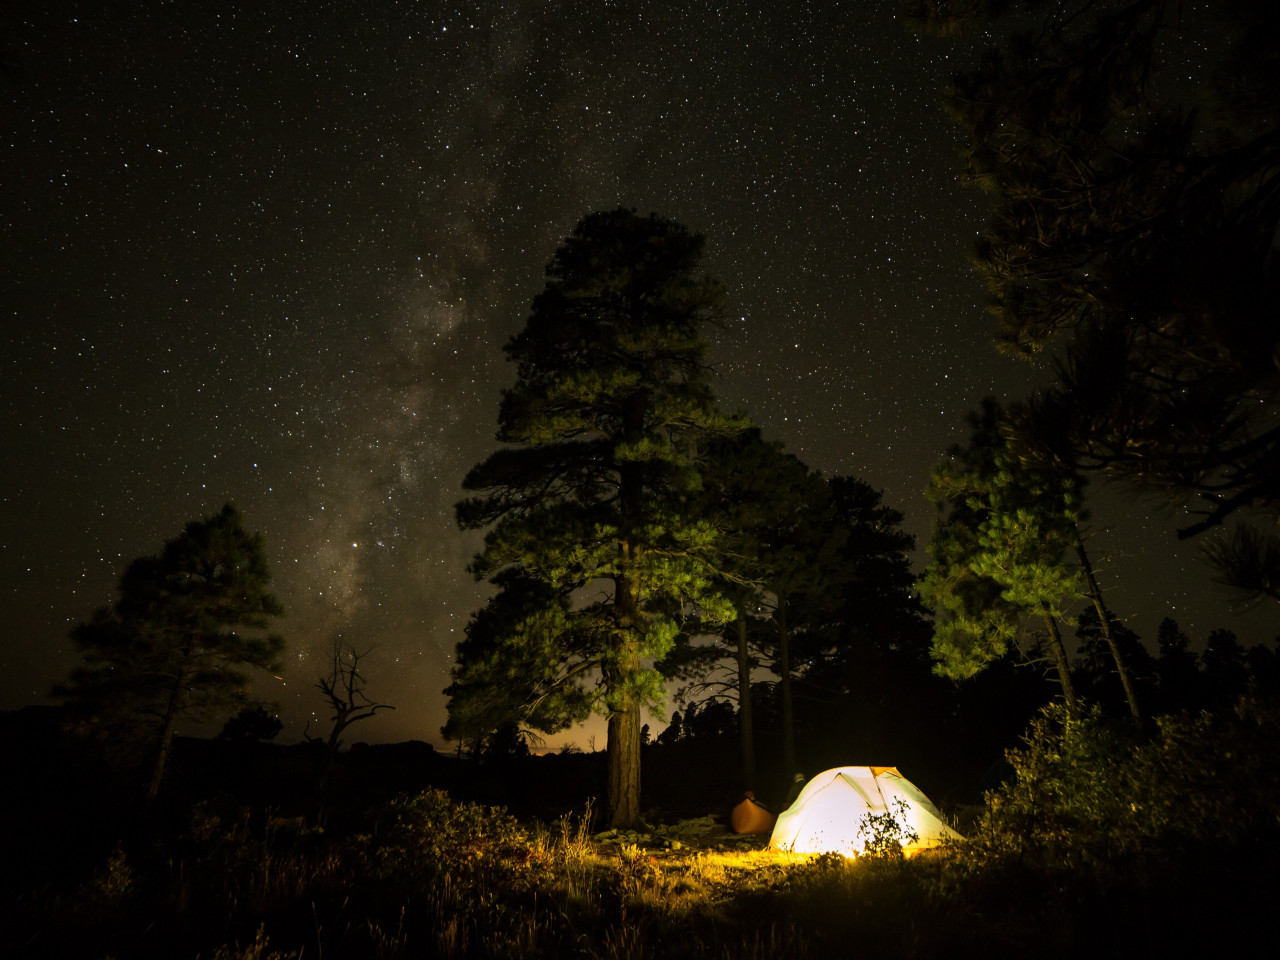 With tent under the night sky wallpaper 1280x960